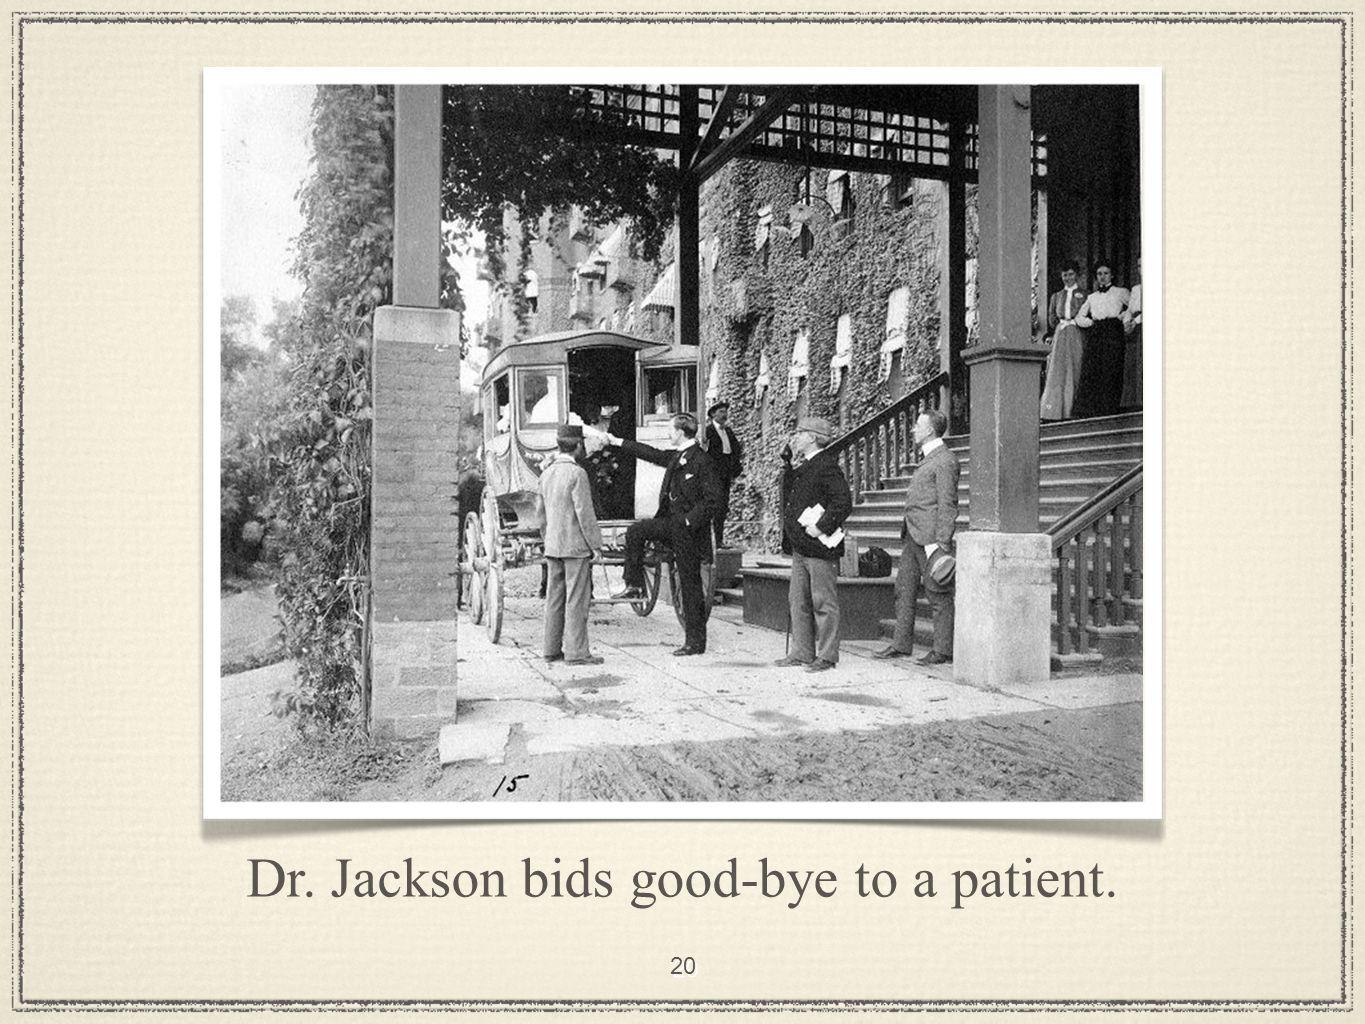 20 Dr. Jackson bids good-bye to a patient.